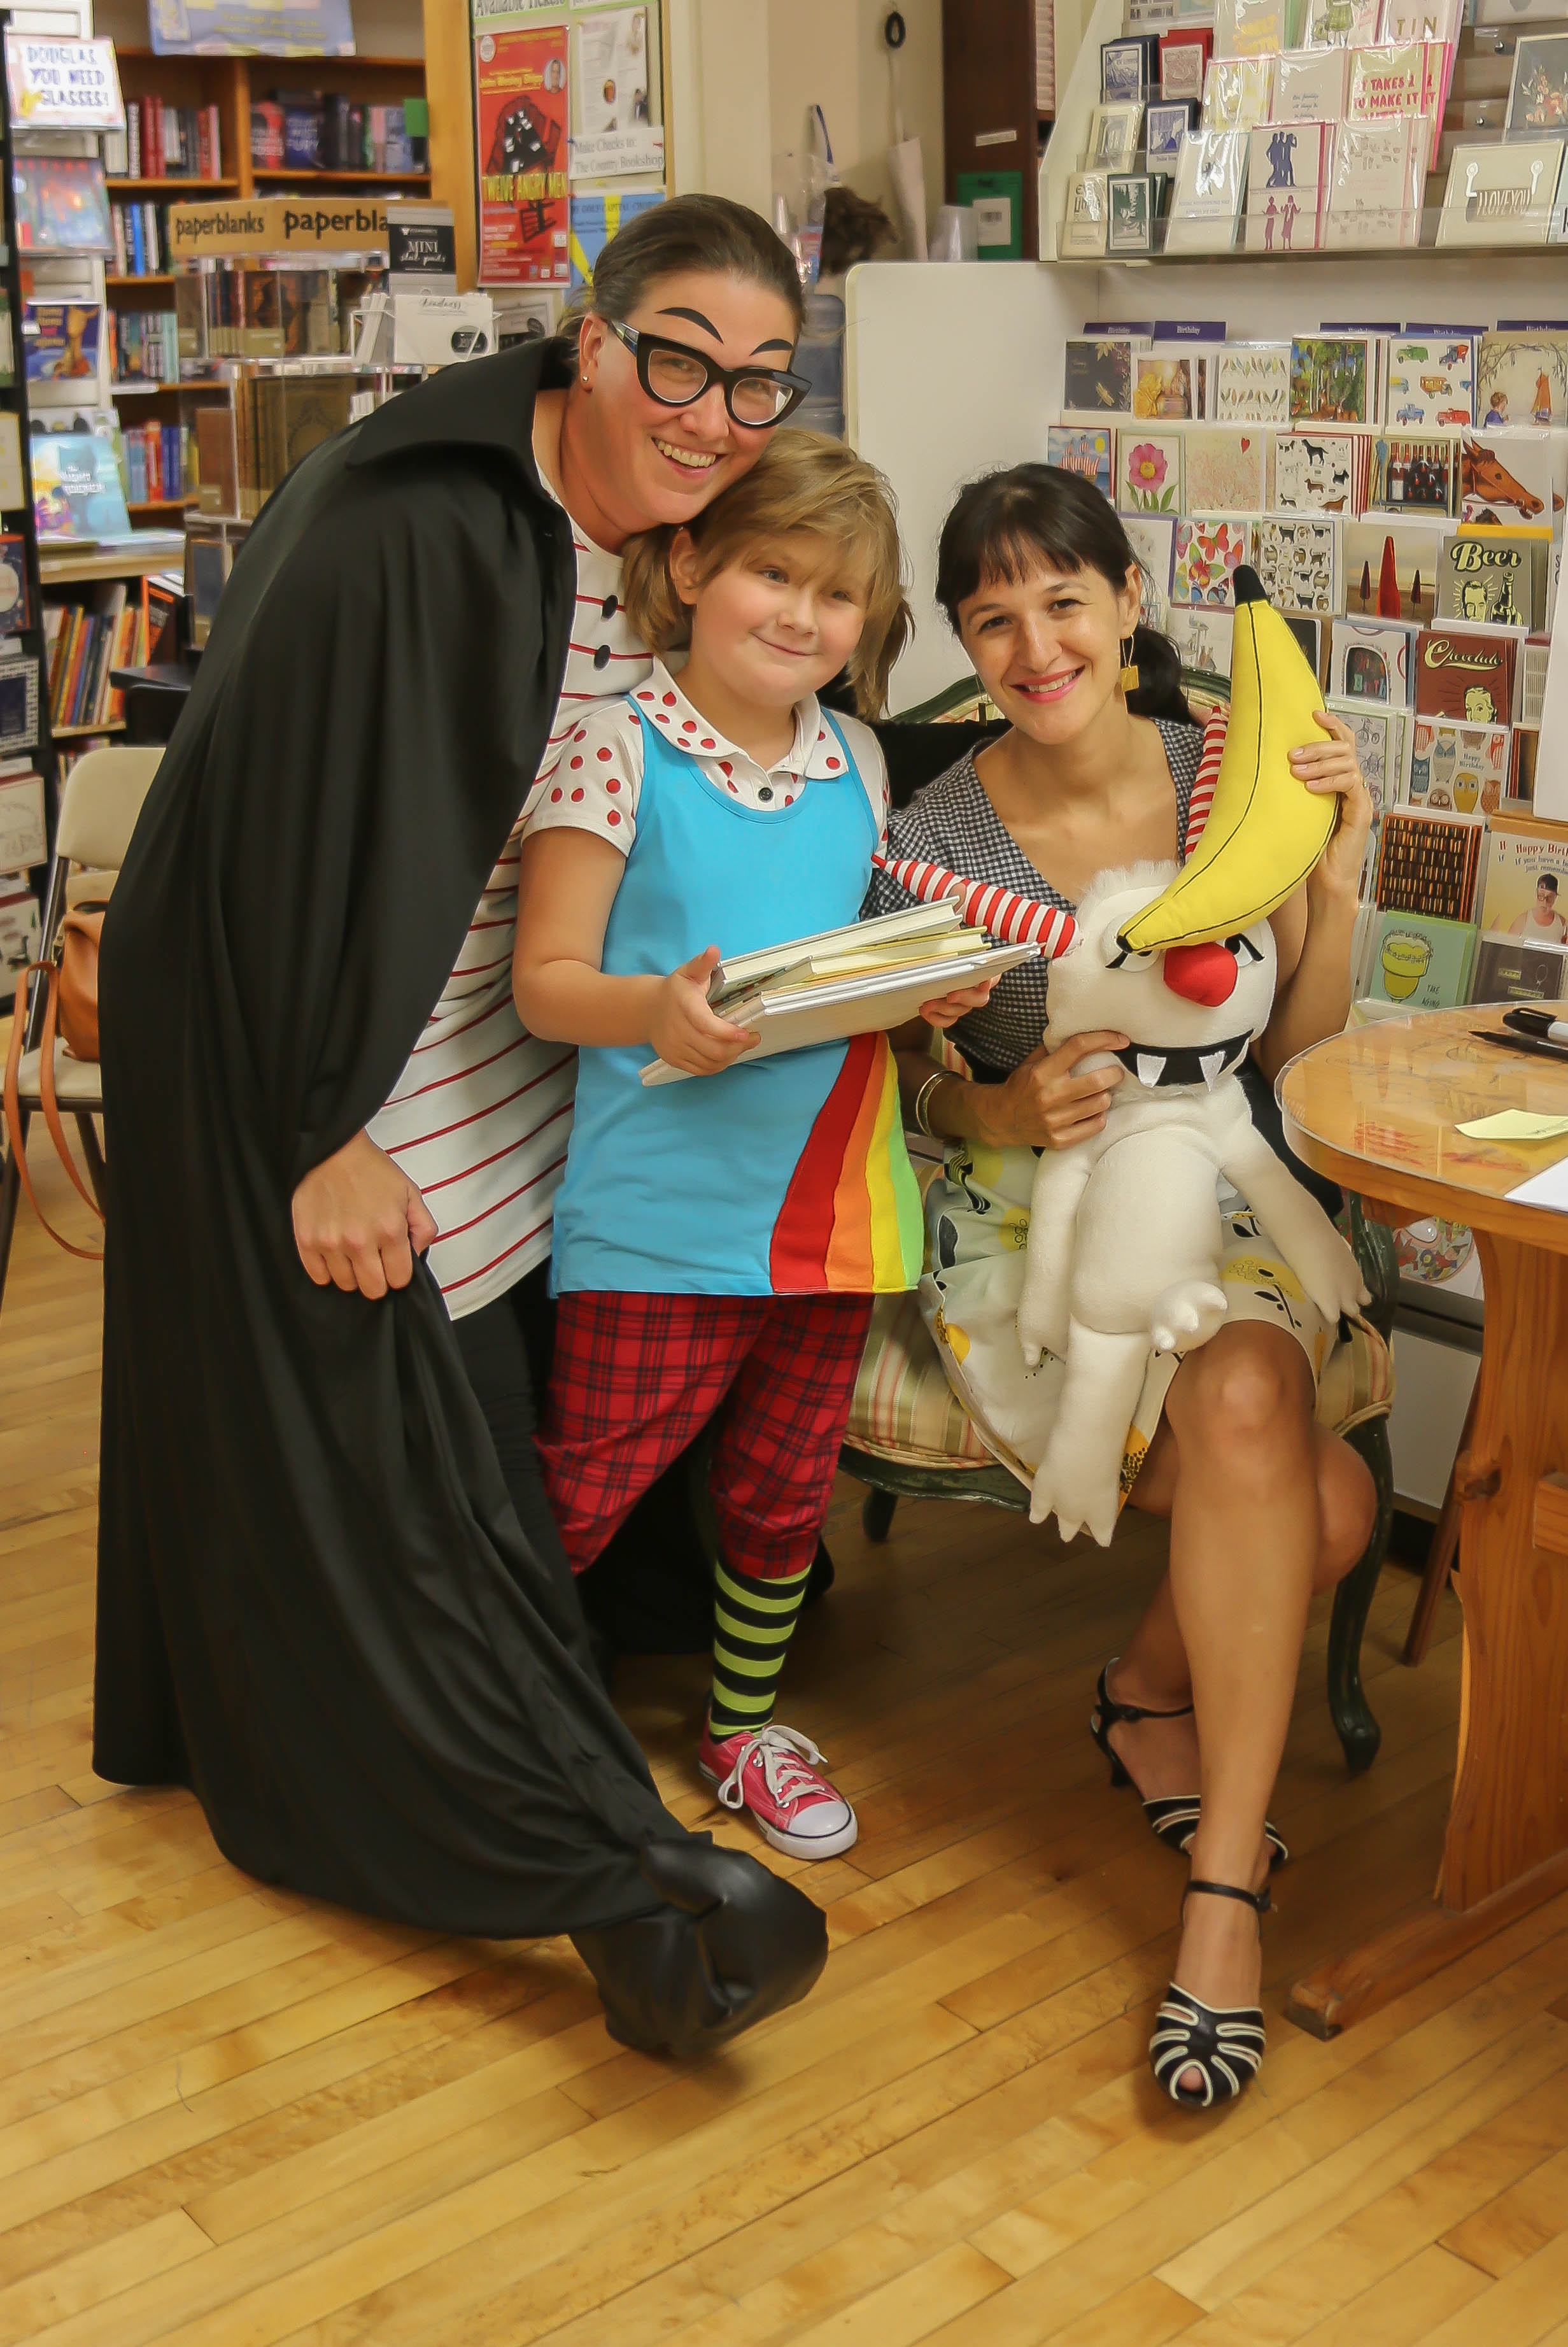 And look who came to The Country Bookshop!!!! Thank you Katherine and Rainer for bringing these characters to life. What a terrific surprise for everyone. It was a thrill to meet such creative and devoted fans of the Dory series.